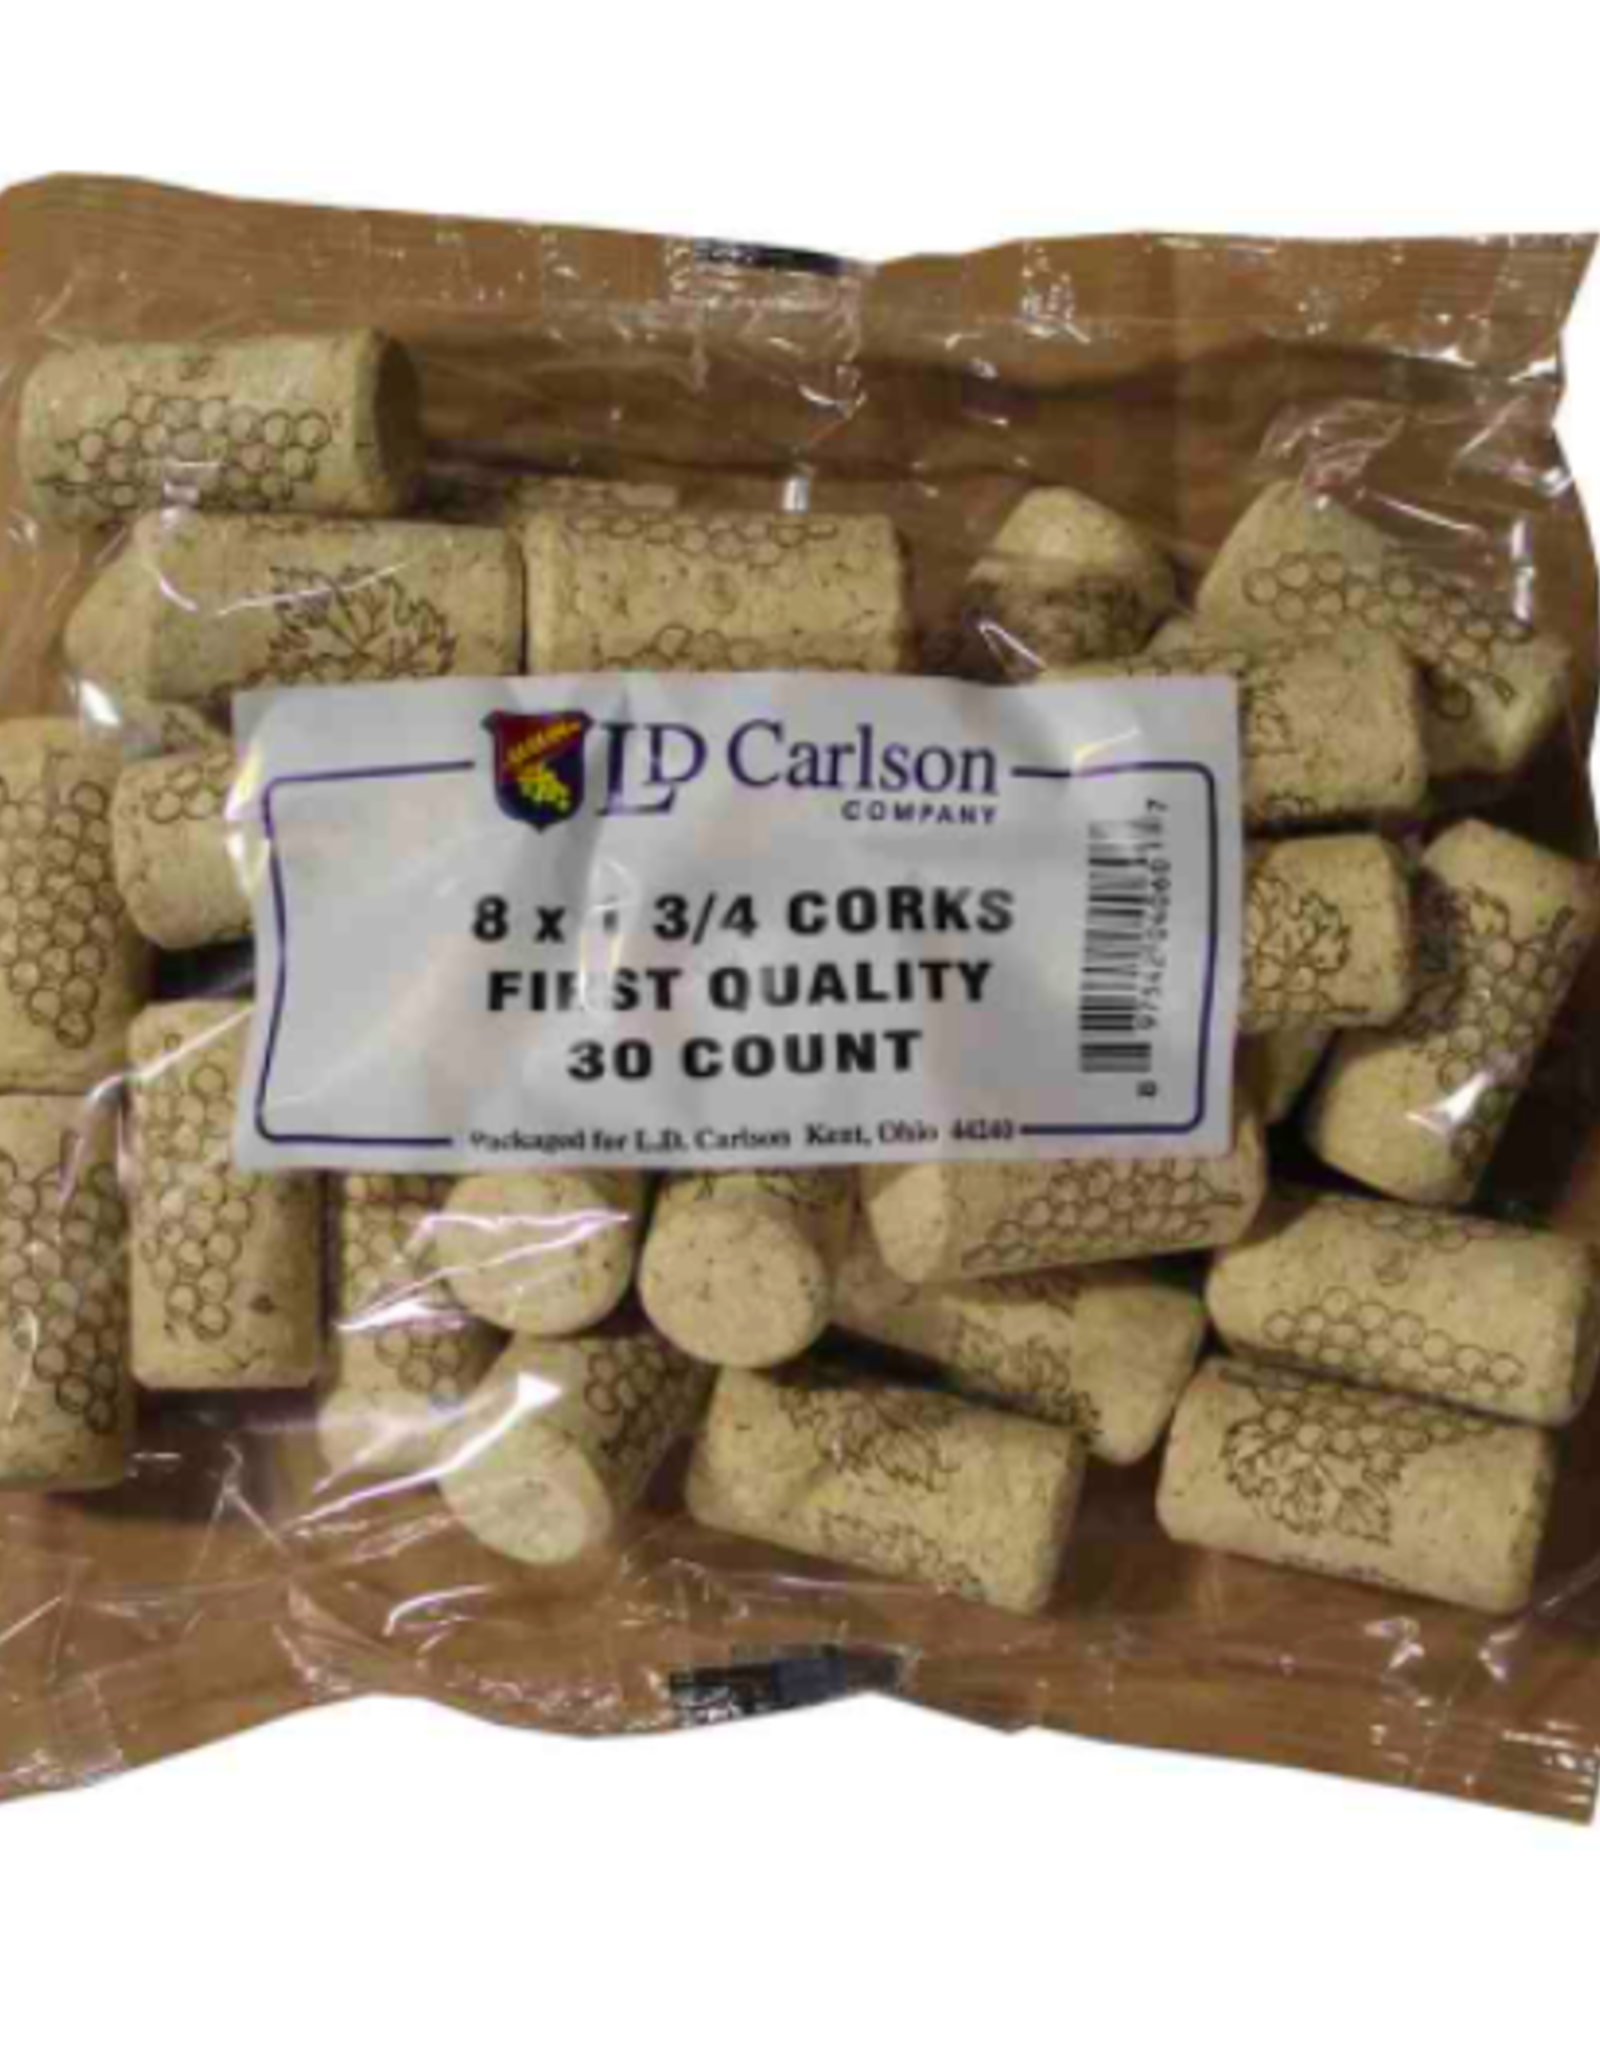 8X1 3/4 FIRST QUALITY STRAIGHT WINE CORKS 44 X 22mm 30/BAG